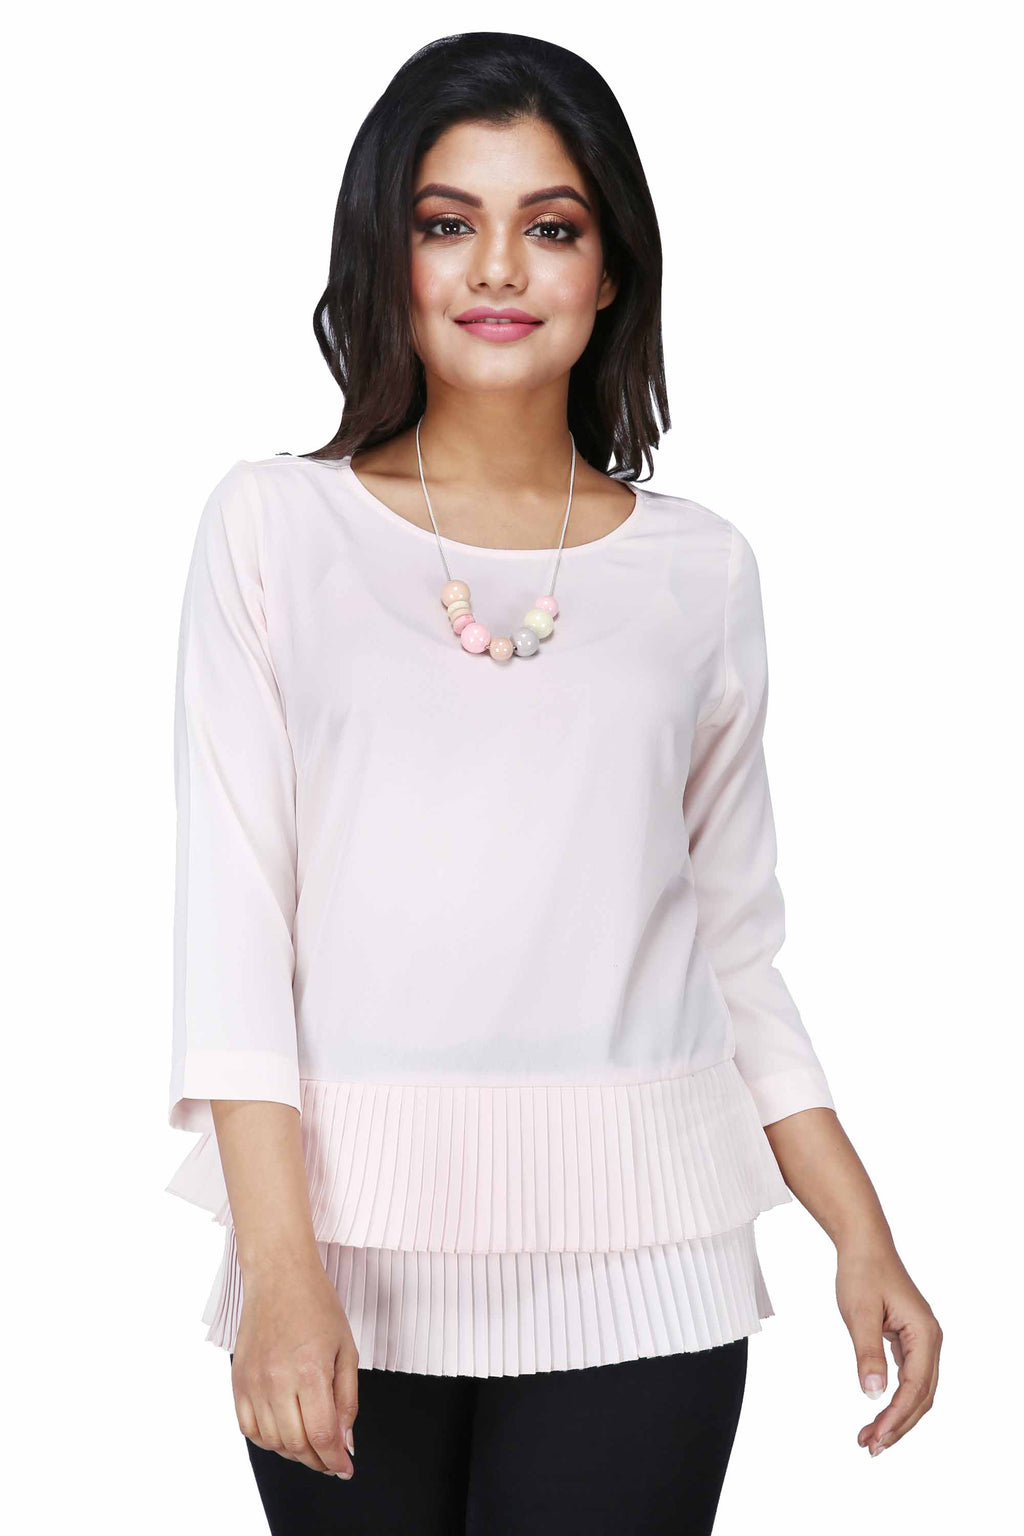 Women's Solid Colour Pleated Peplum Heavenly Pink Top - K1508